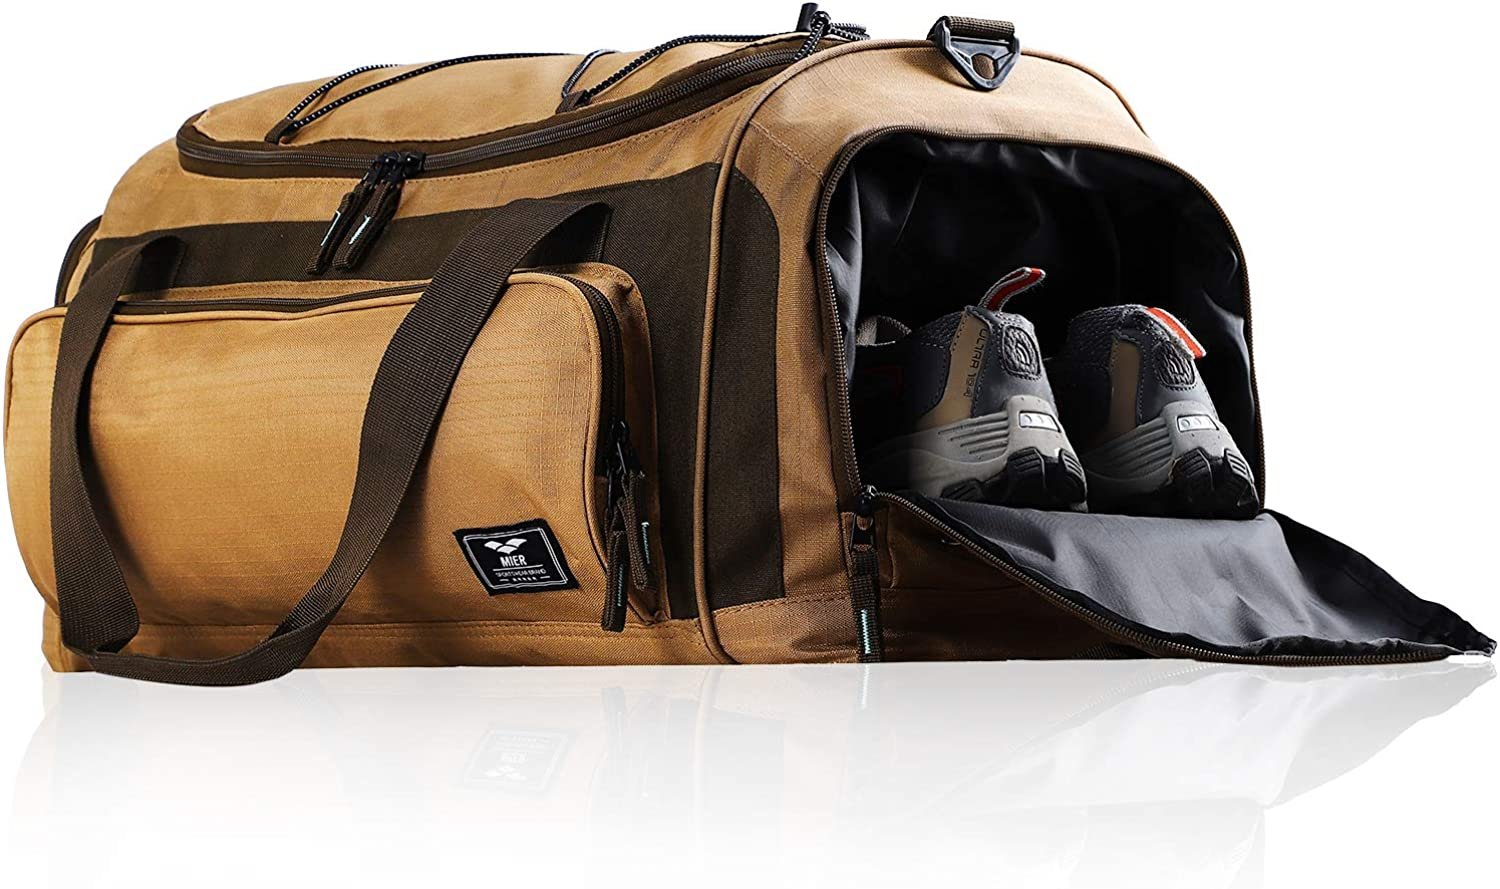 MIER Direct sale of manufacturer Shipping included Large Duffel Bag Men's with Gym Compartment Shoe